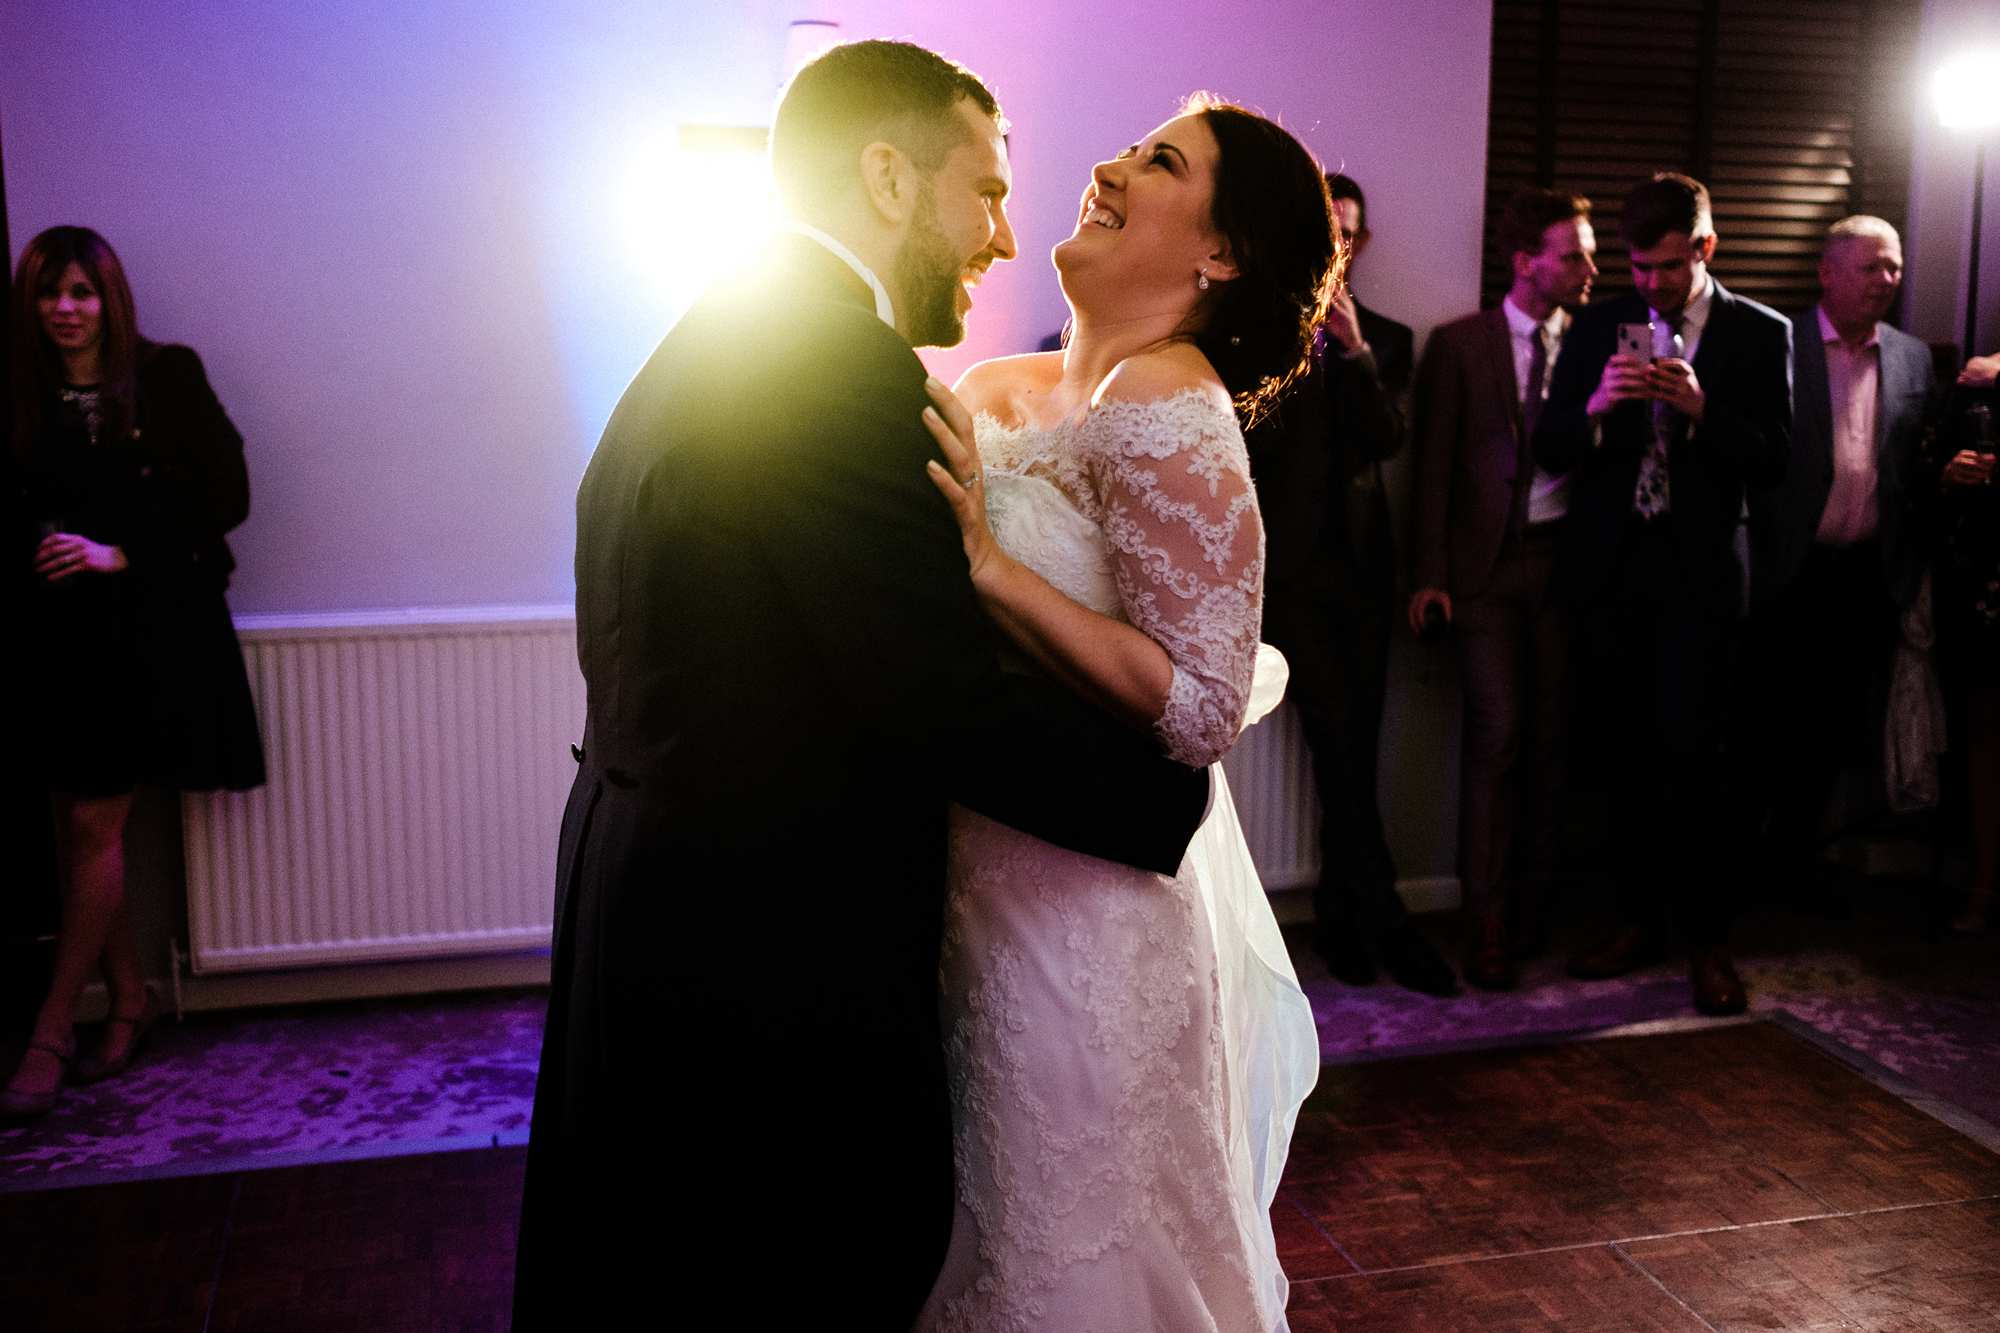 February wedding at Highfield Park in Hampshire